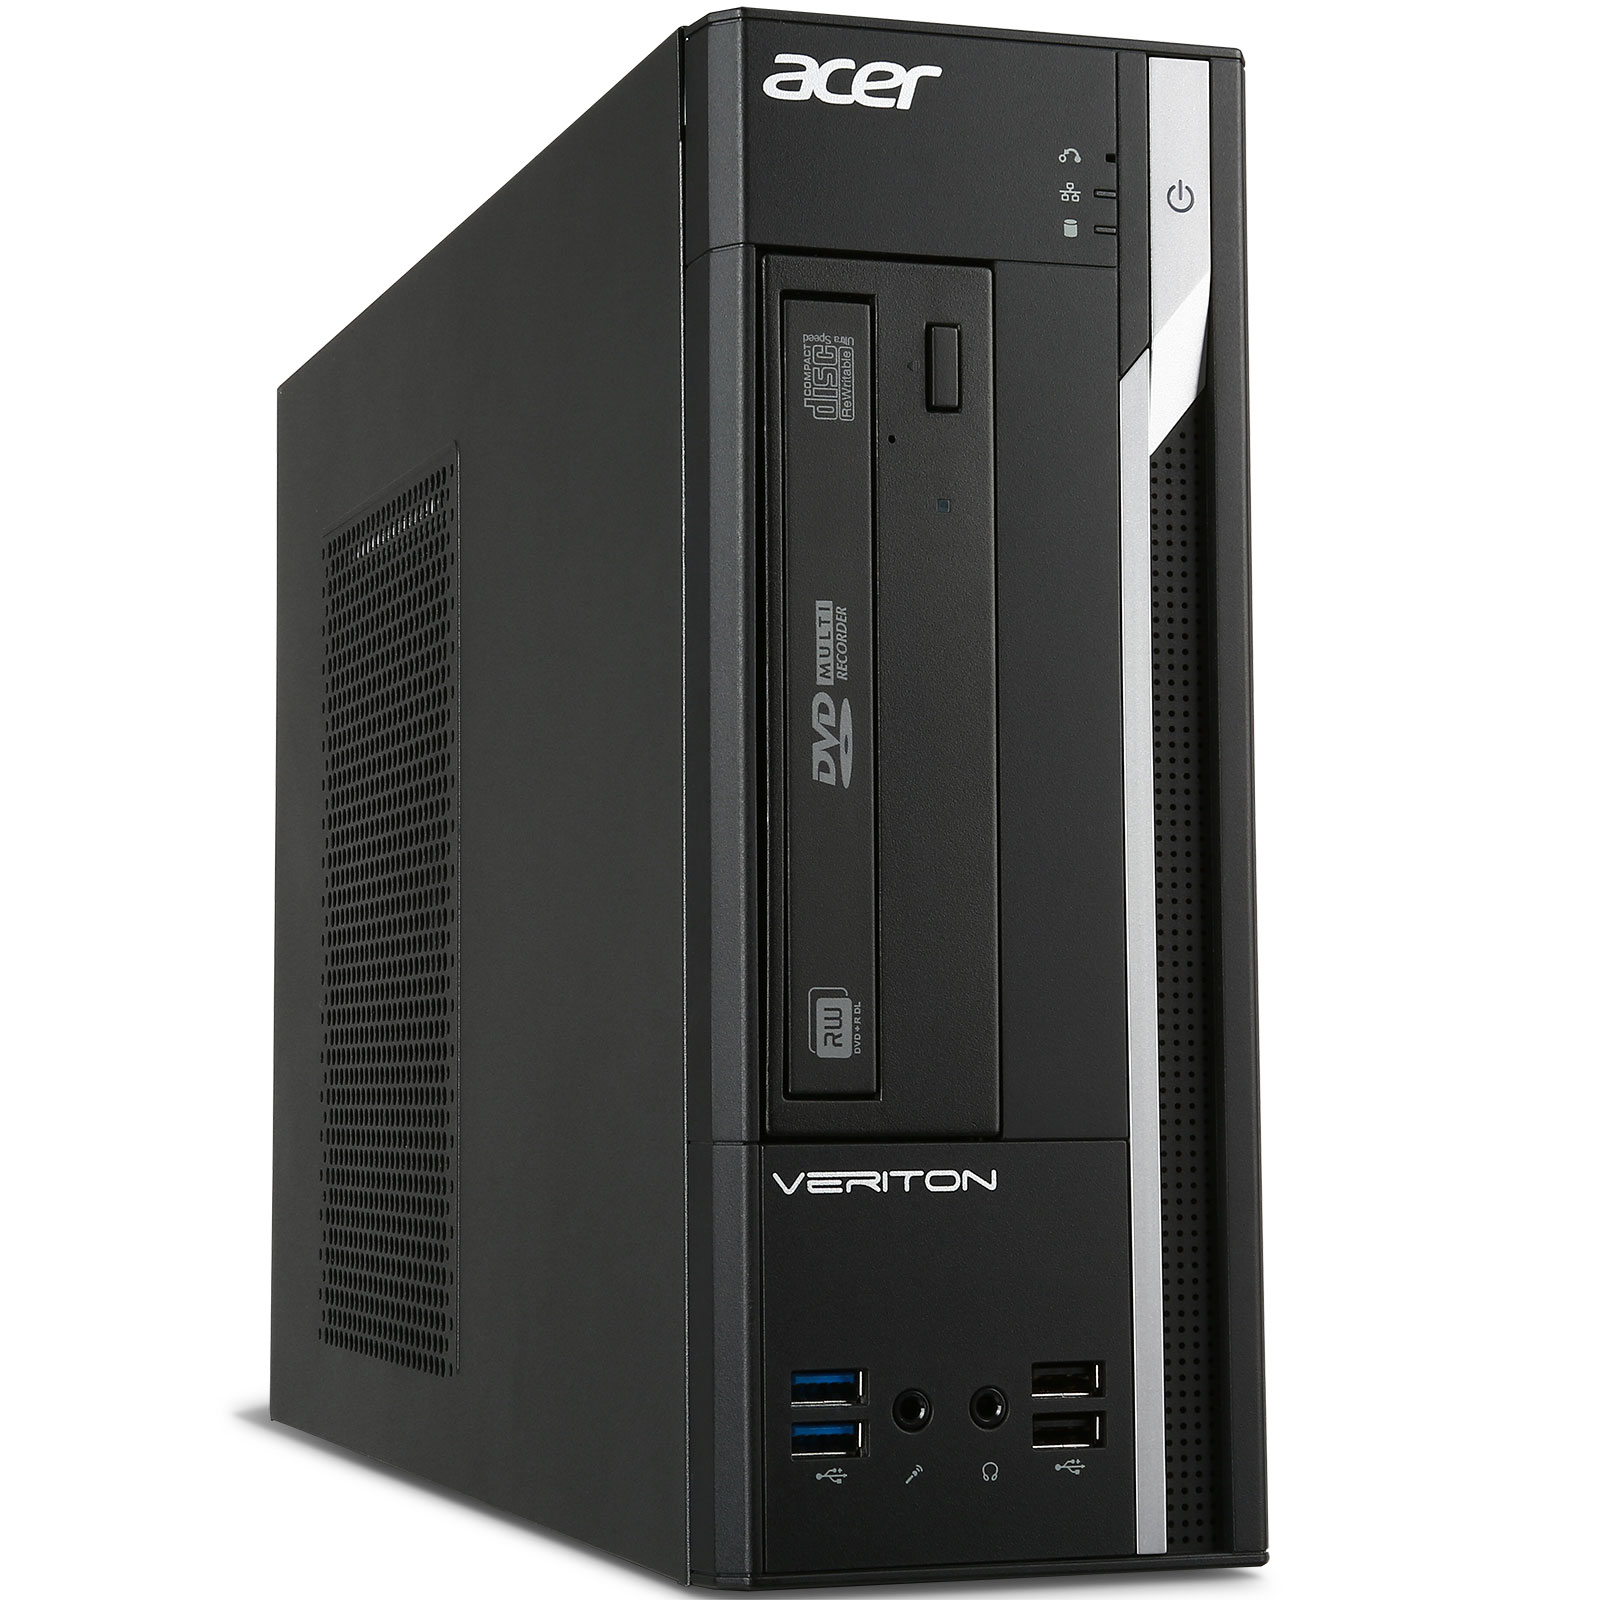 acer veriton x2640g dt pc de bureau acer sur. Black Bedroom Furniture Sets. Home Design Ideas